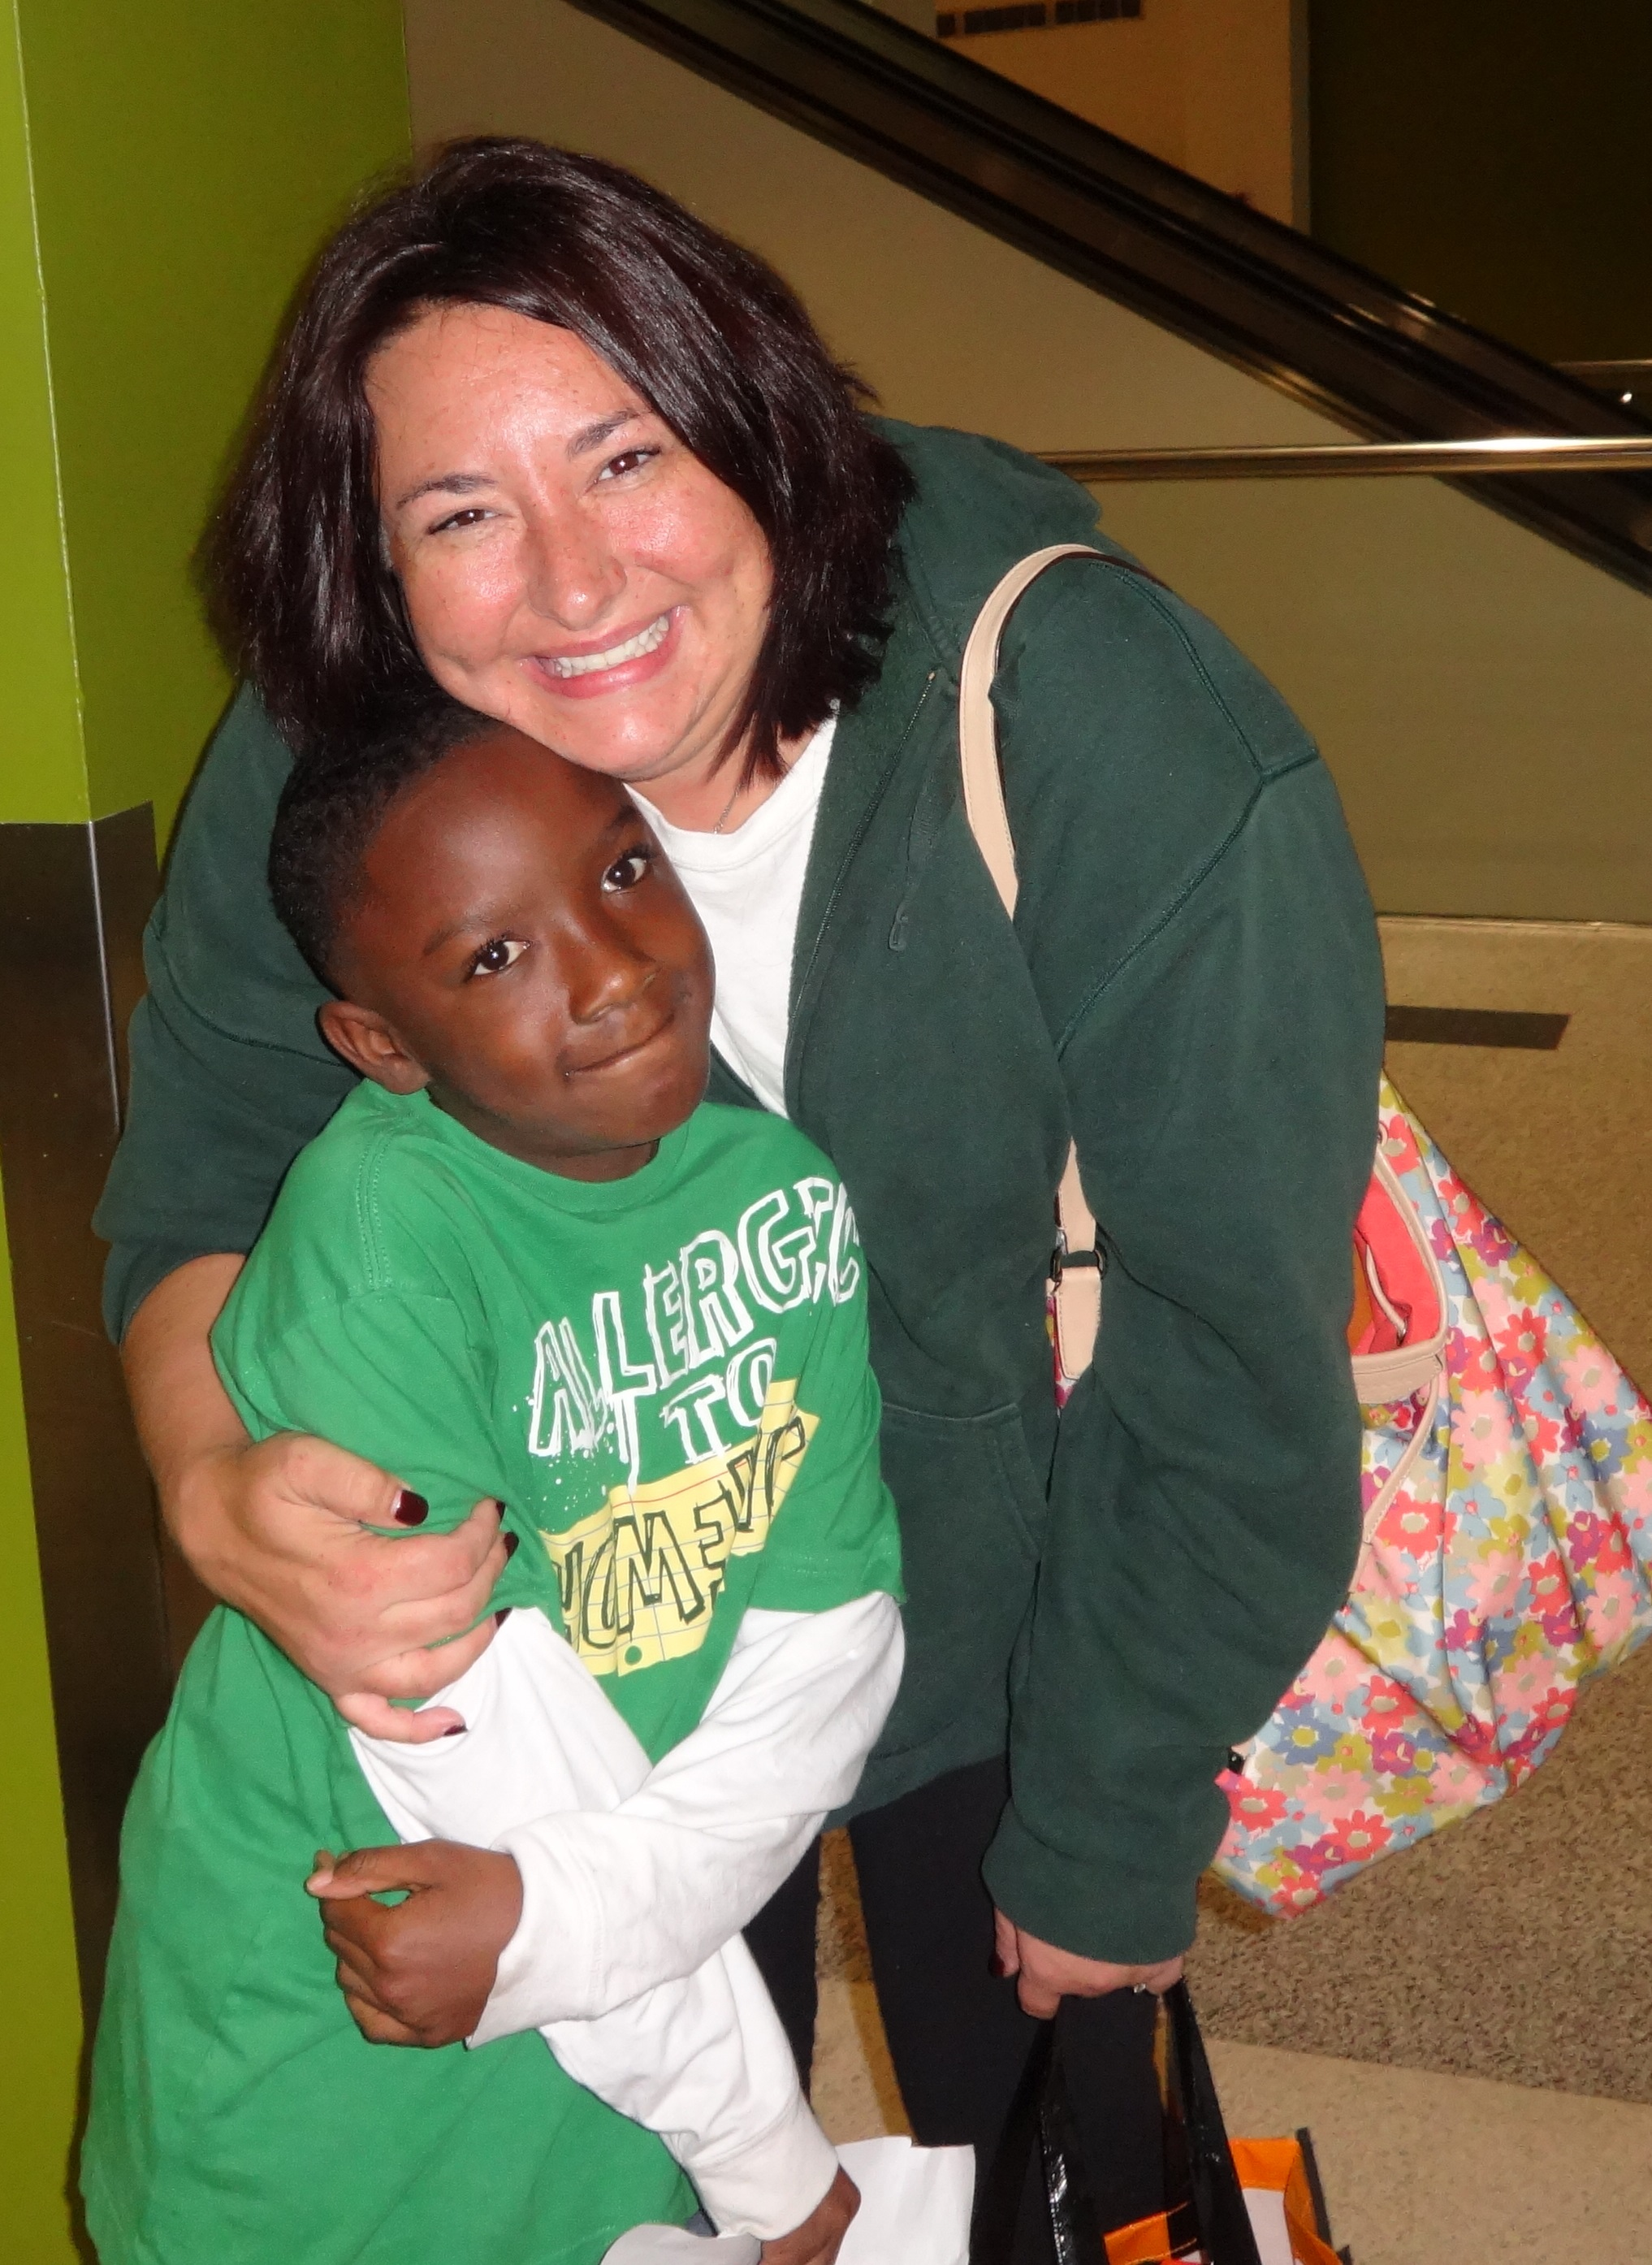 Melanie welcoming home a client's son at the airport.